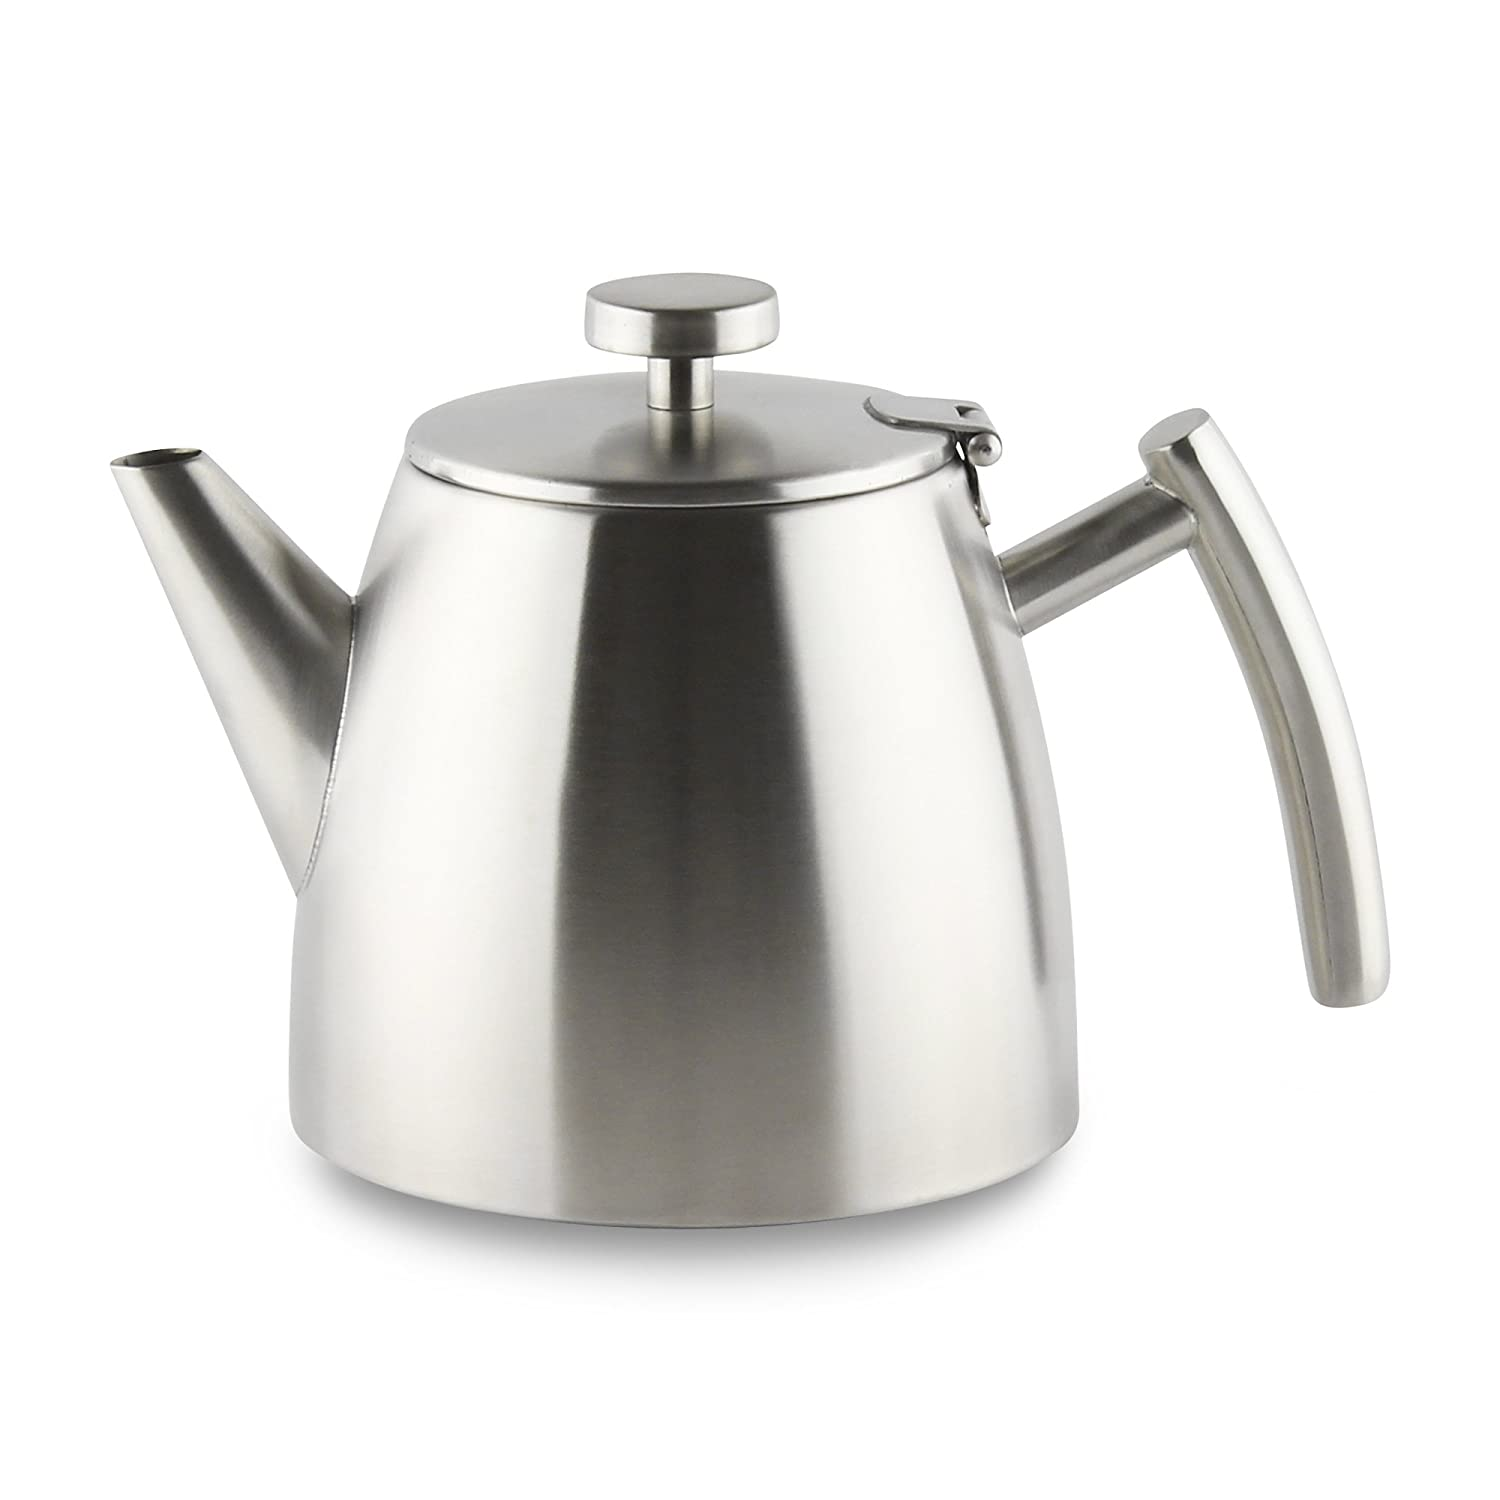 Café Ole Stainless Steel Double Wall Tea Pot with Hinged Lid, Satin, 1.2L/40oz, Satin Finish Grunwerg HTP-12DW/S